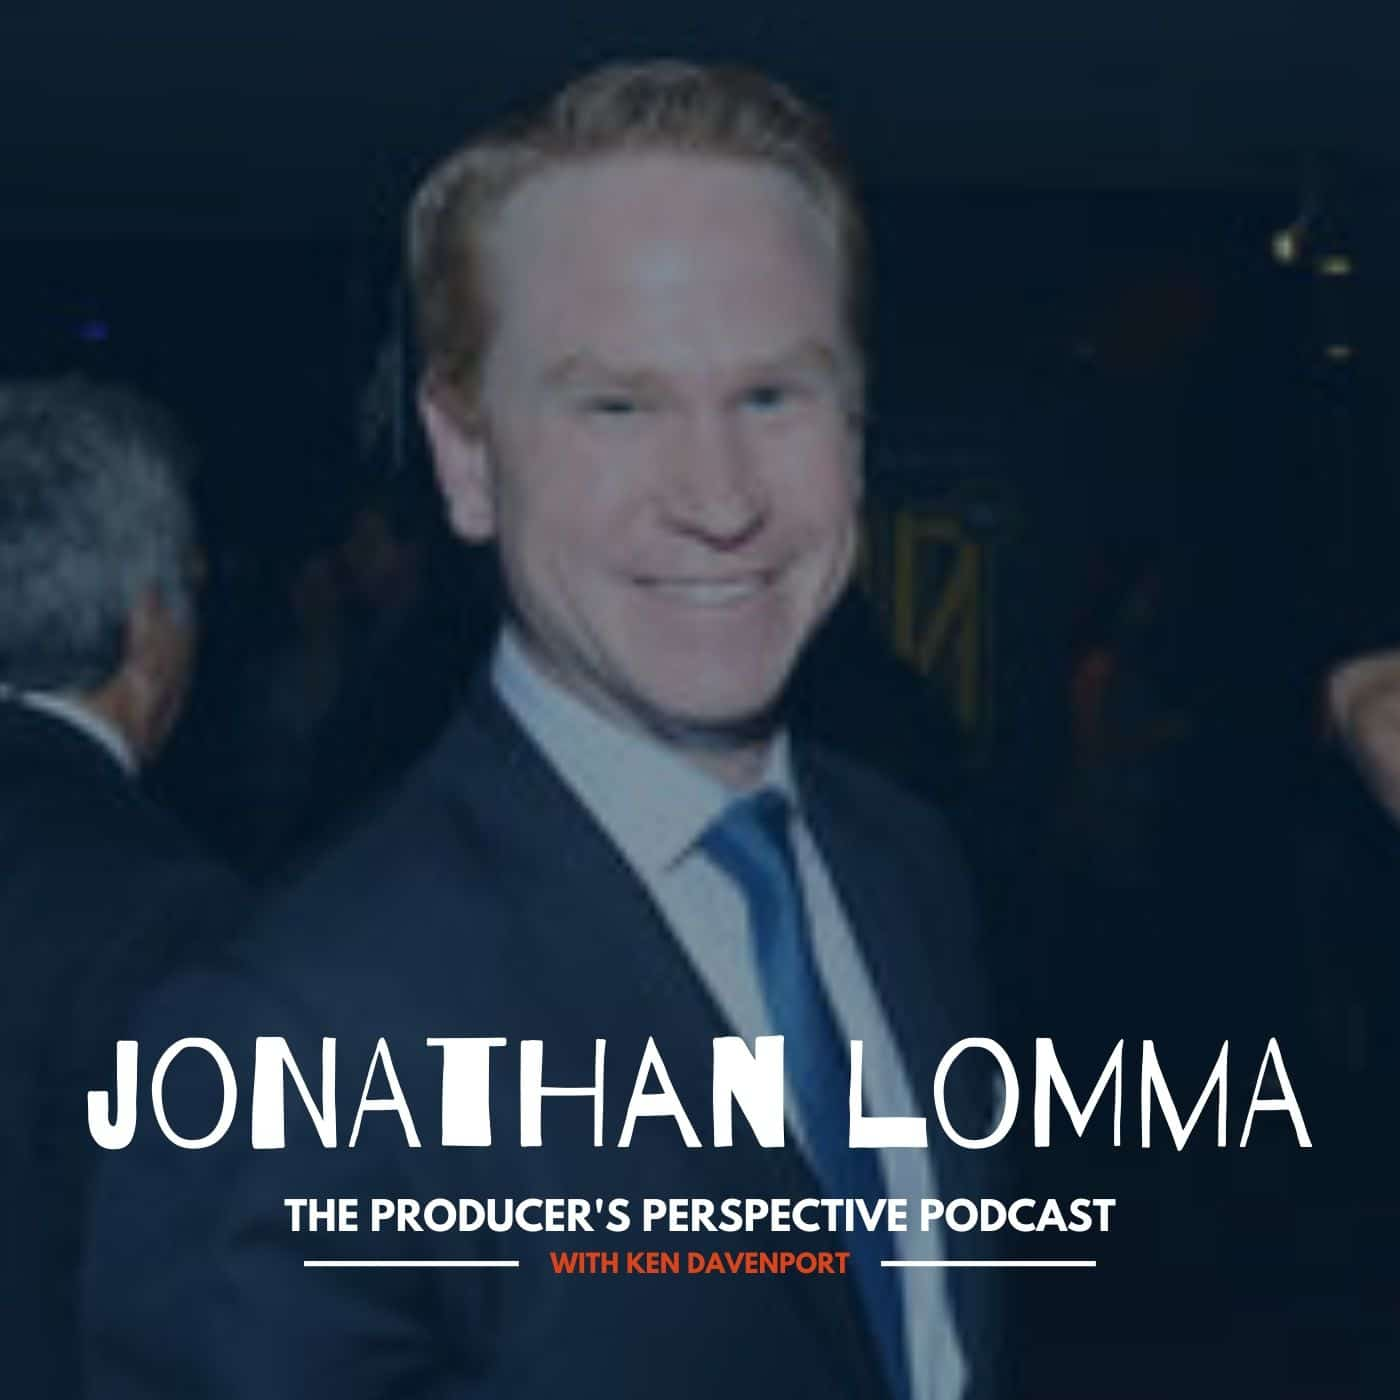 Ken Davenport's The Producer's Perspective Podcast Episode 145 - Jonathan Lomma